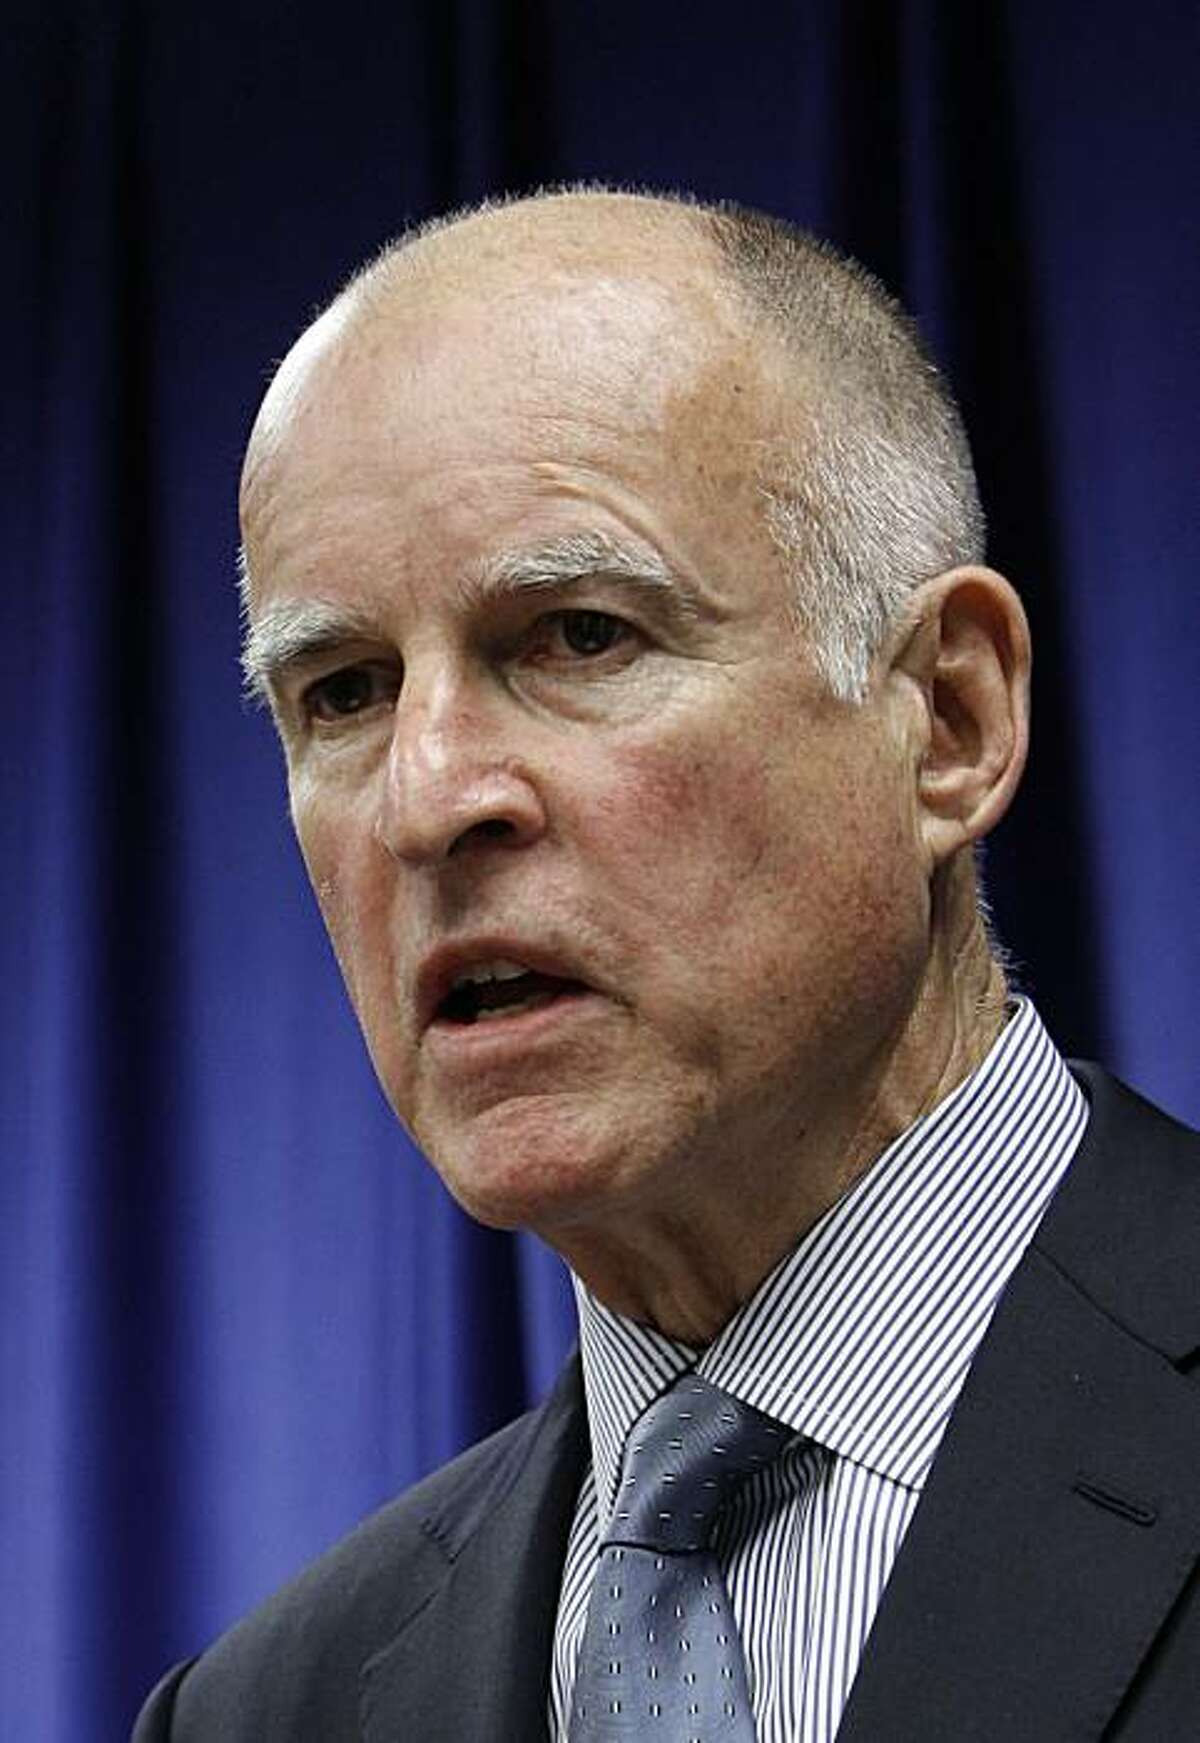 In this photo taken Thursday, May, 6, 2010, Attorney General Jerry Brown, who is running unopposed for the Democratic nomination for Governor in the June primary, is seen at a news conference in Sacramento, Calif. (Photo/Rich Pedroncelli)